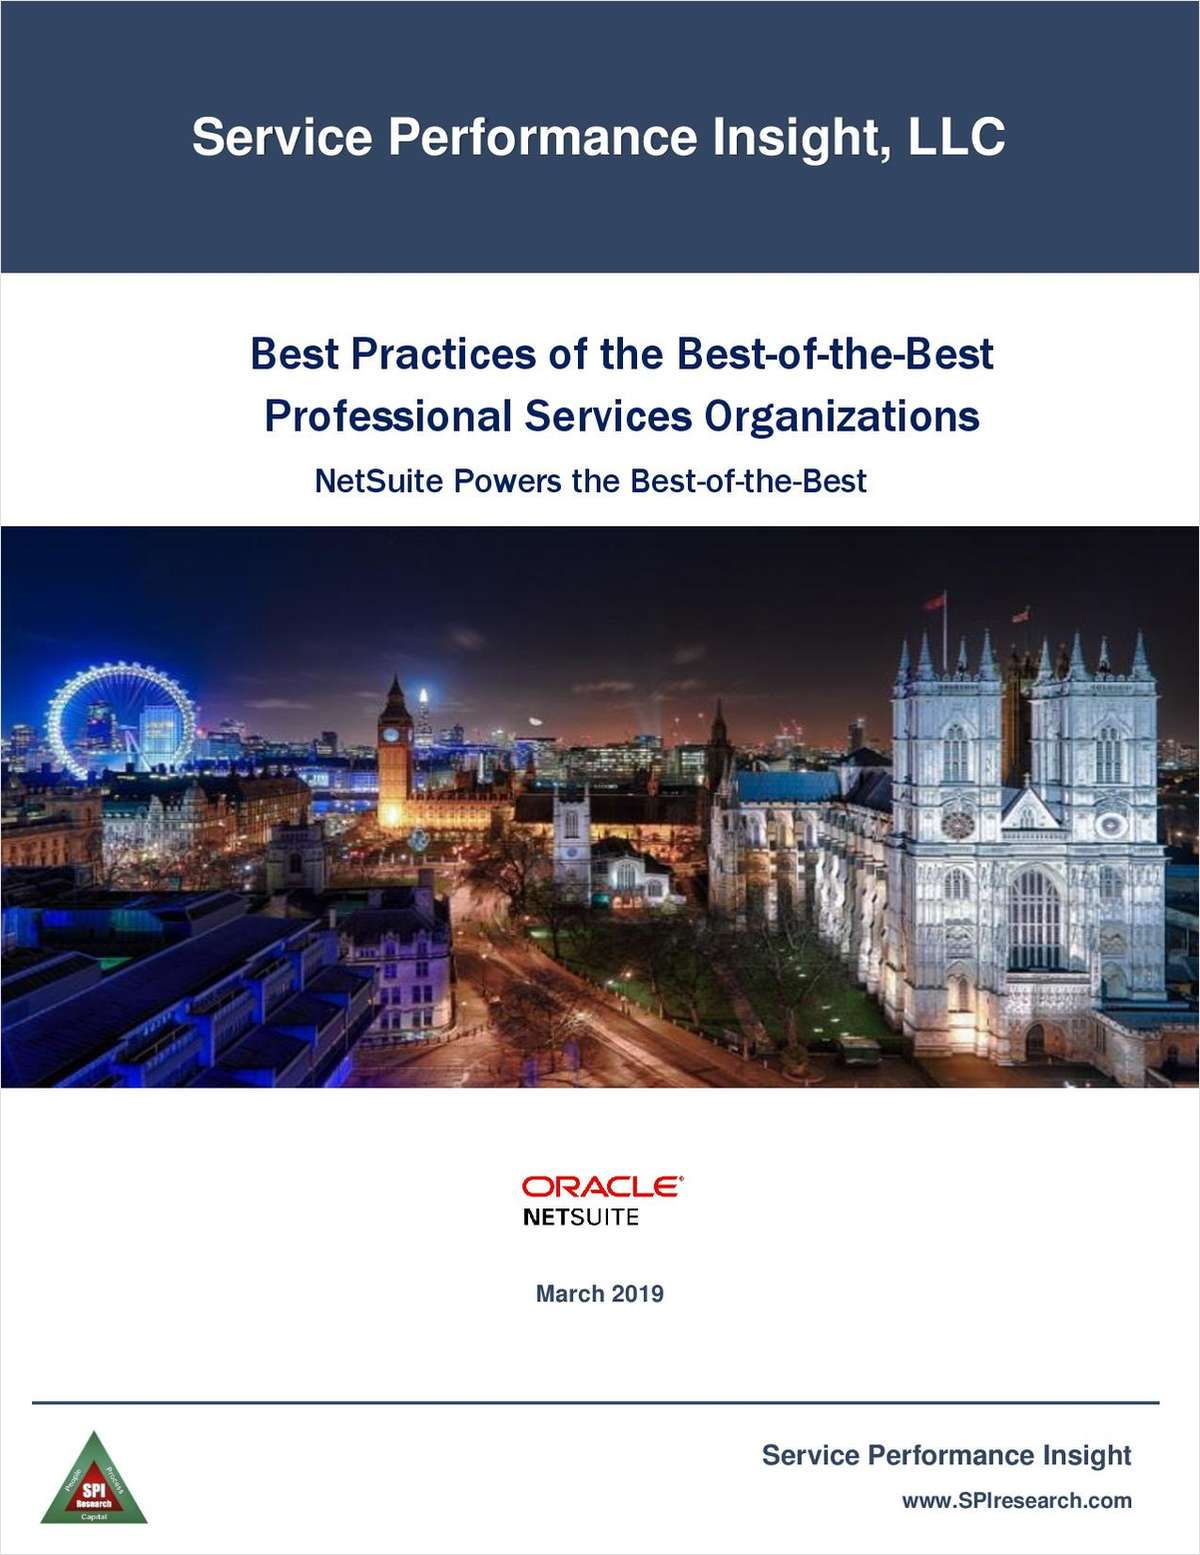 Introducing the 2018 Best-of-the-Best Professional Services Organizations